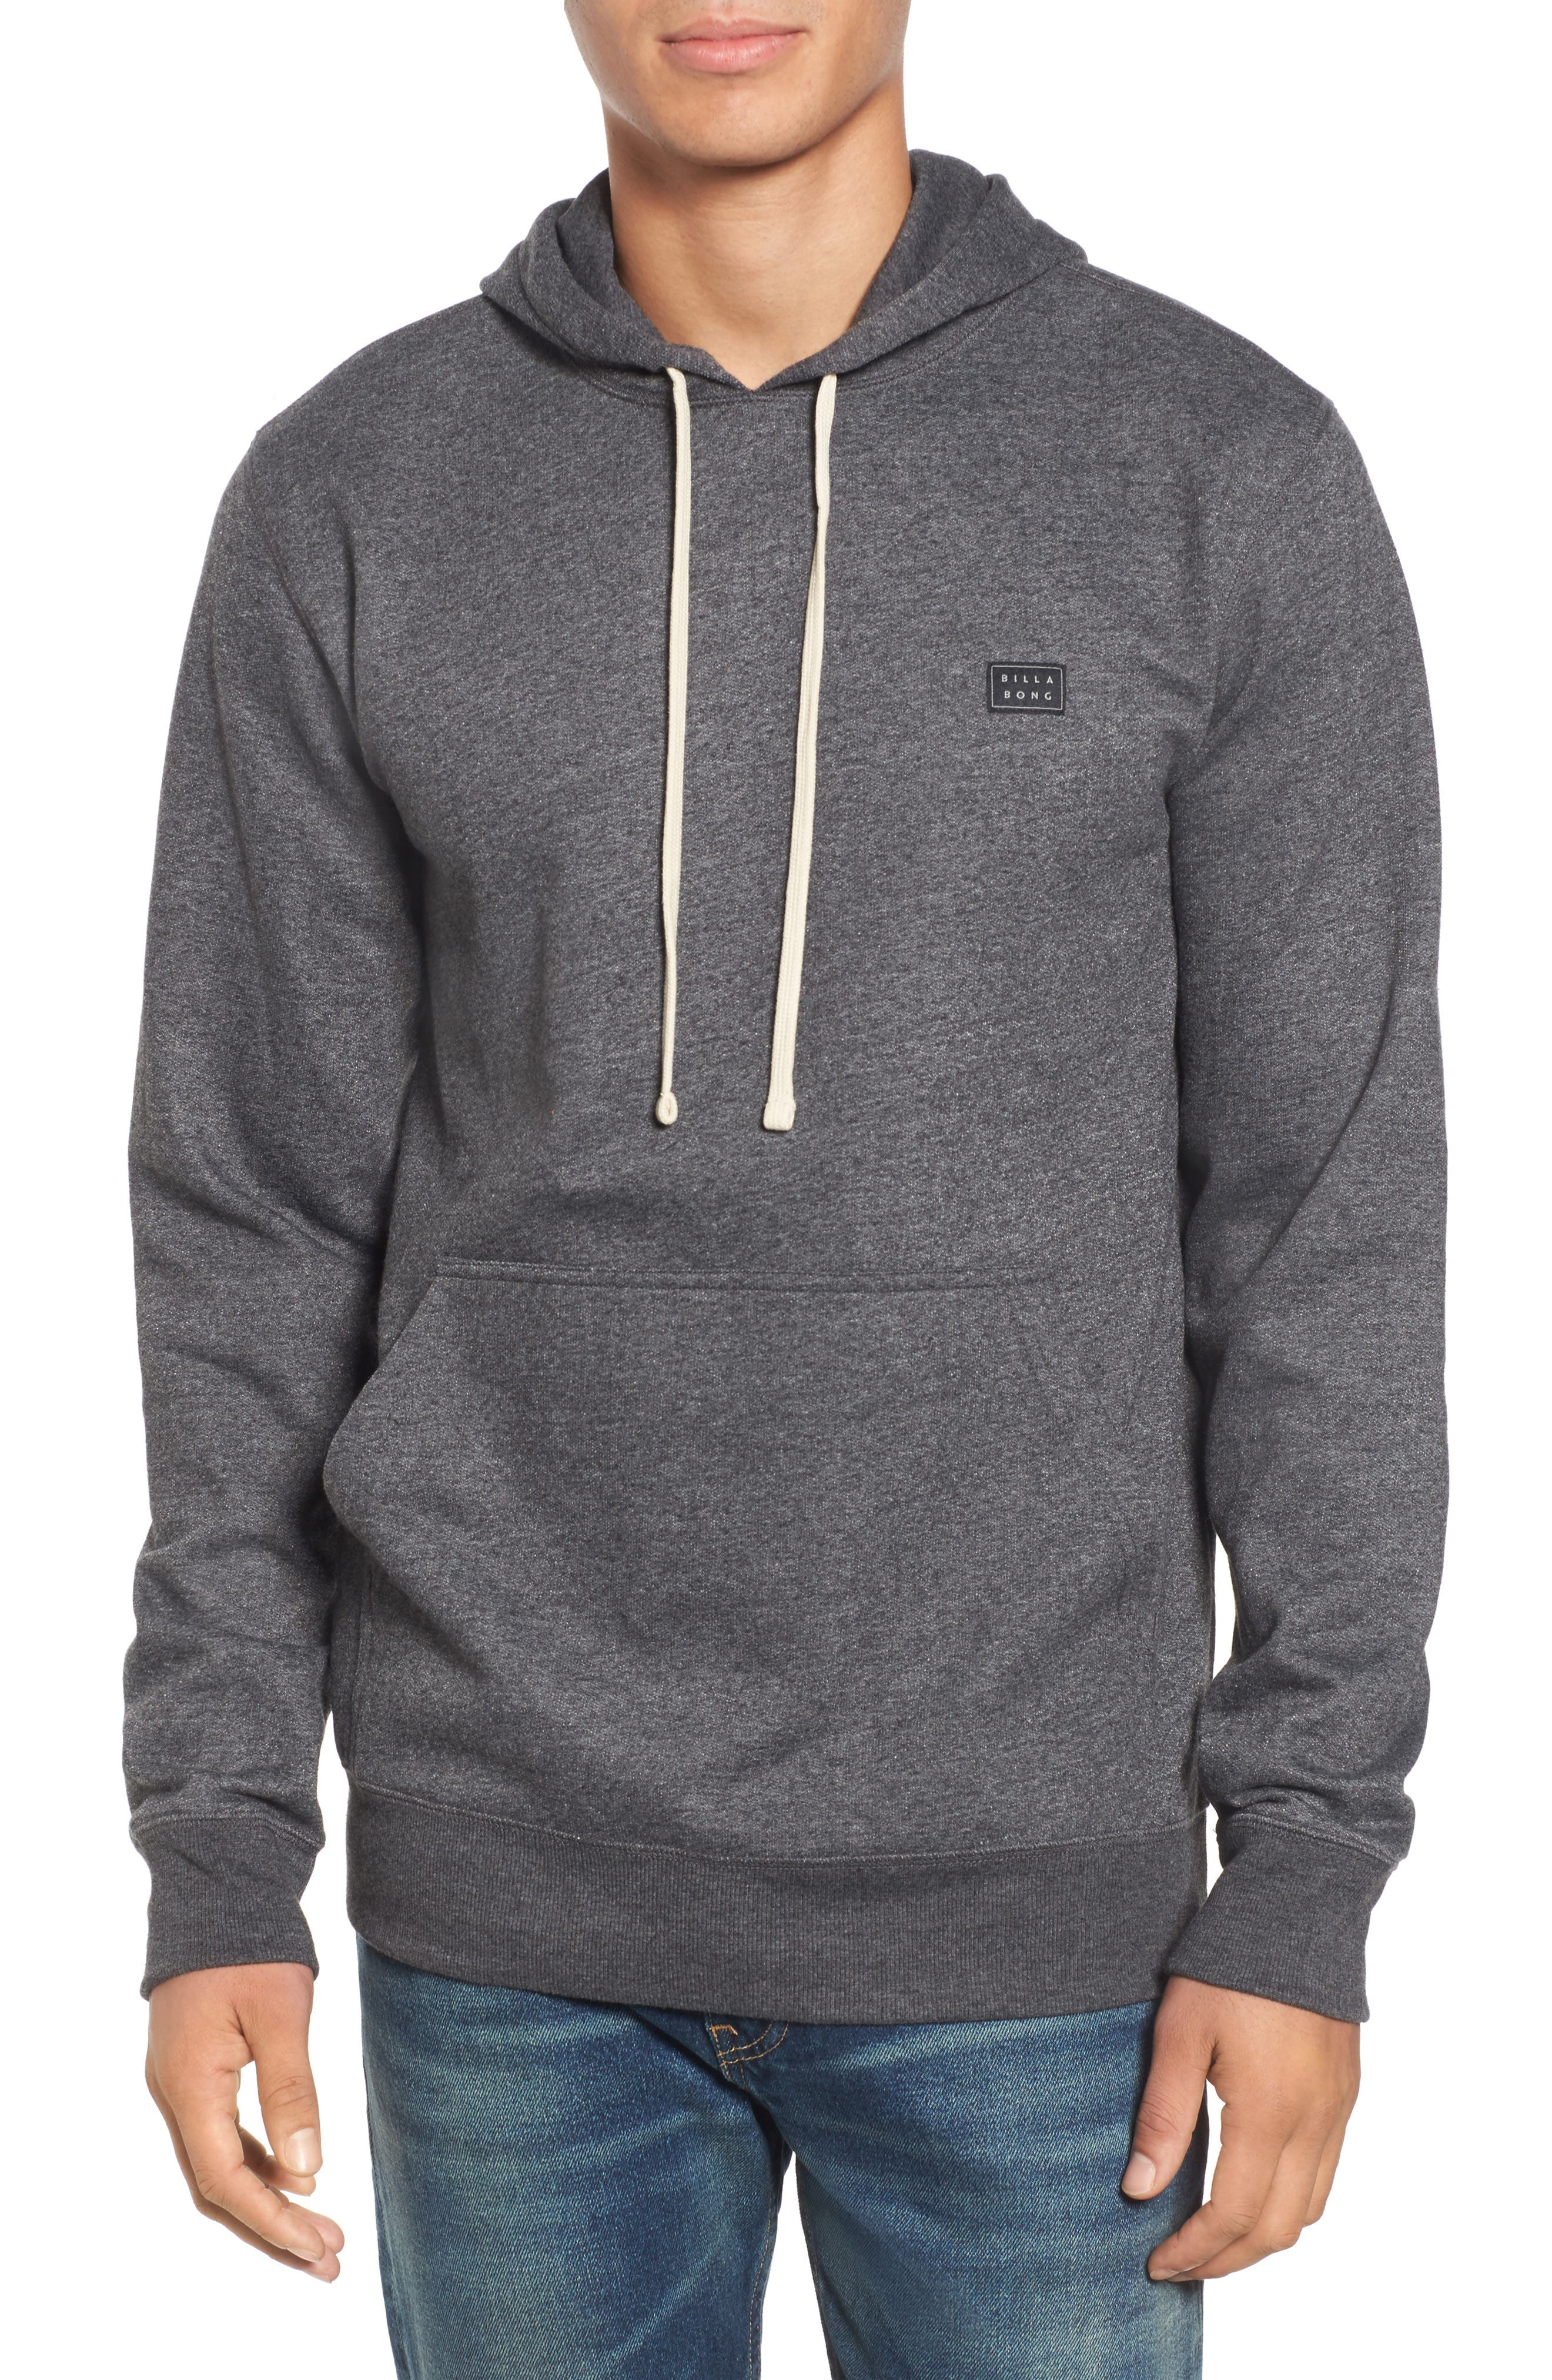 All Day Pullover Hoodie,                         Main,                         color, 025